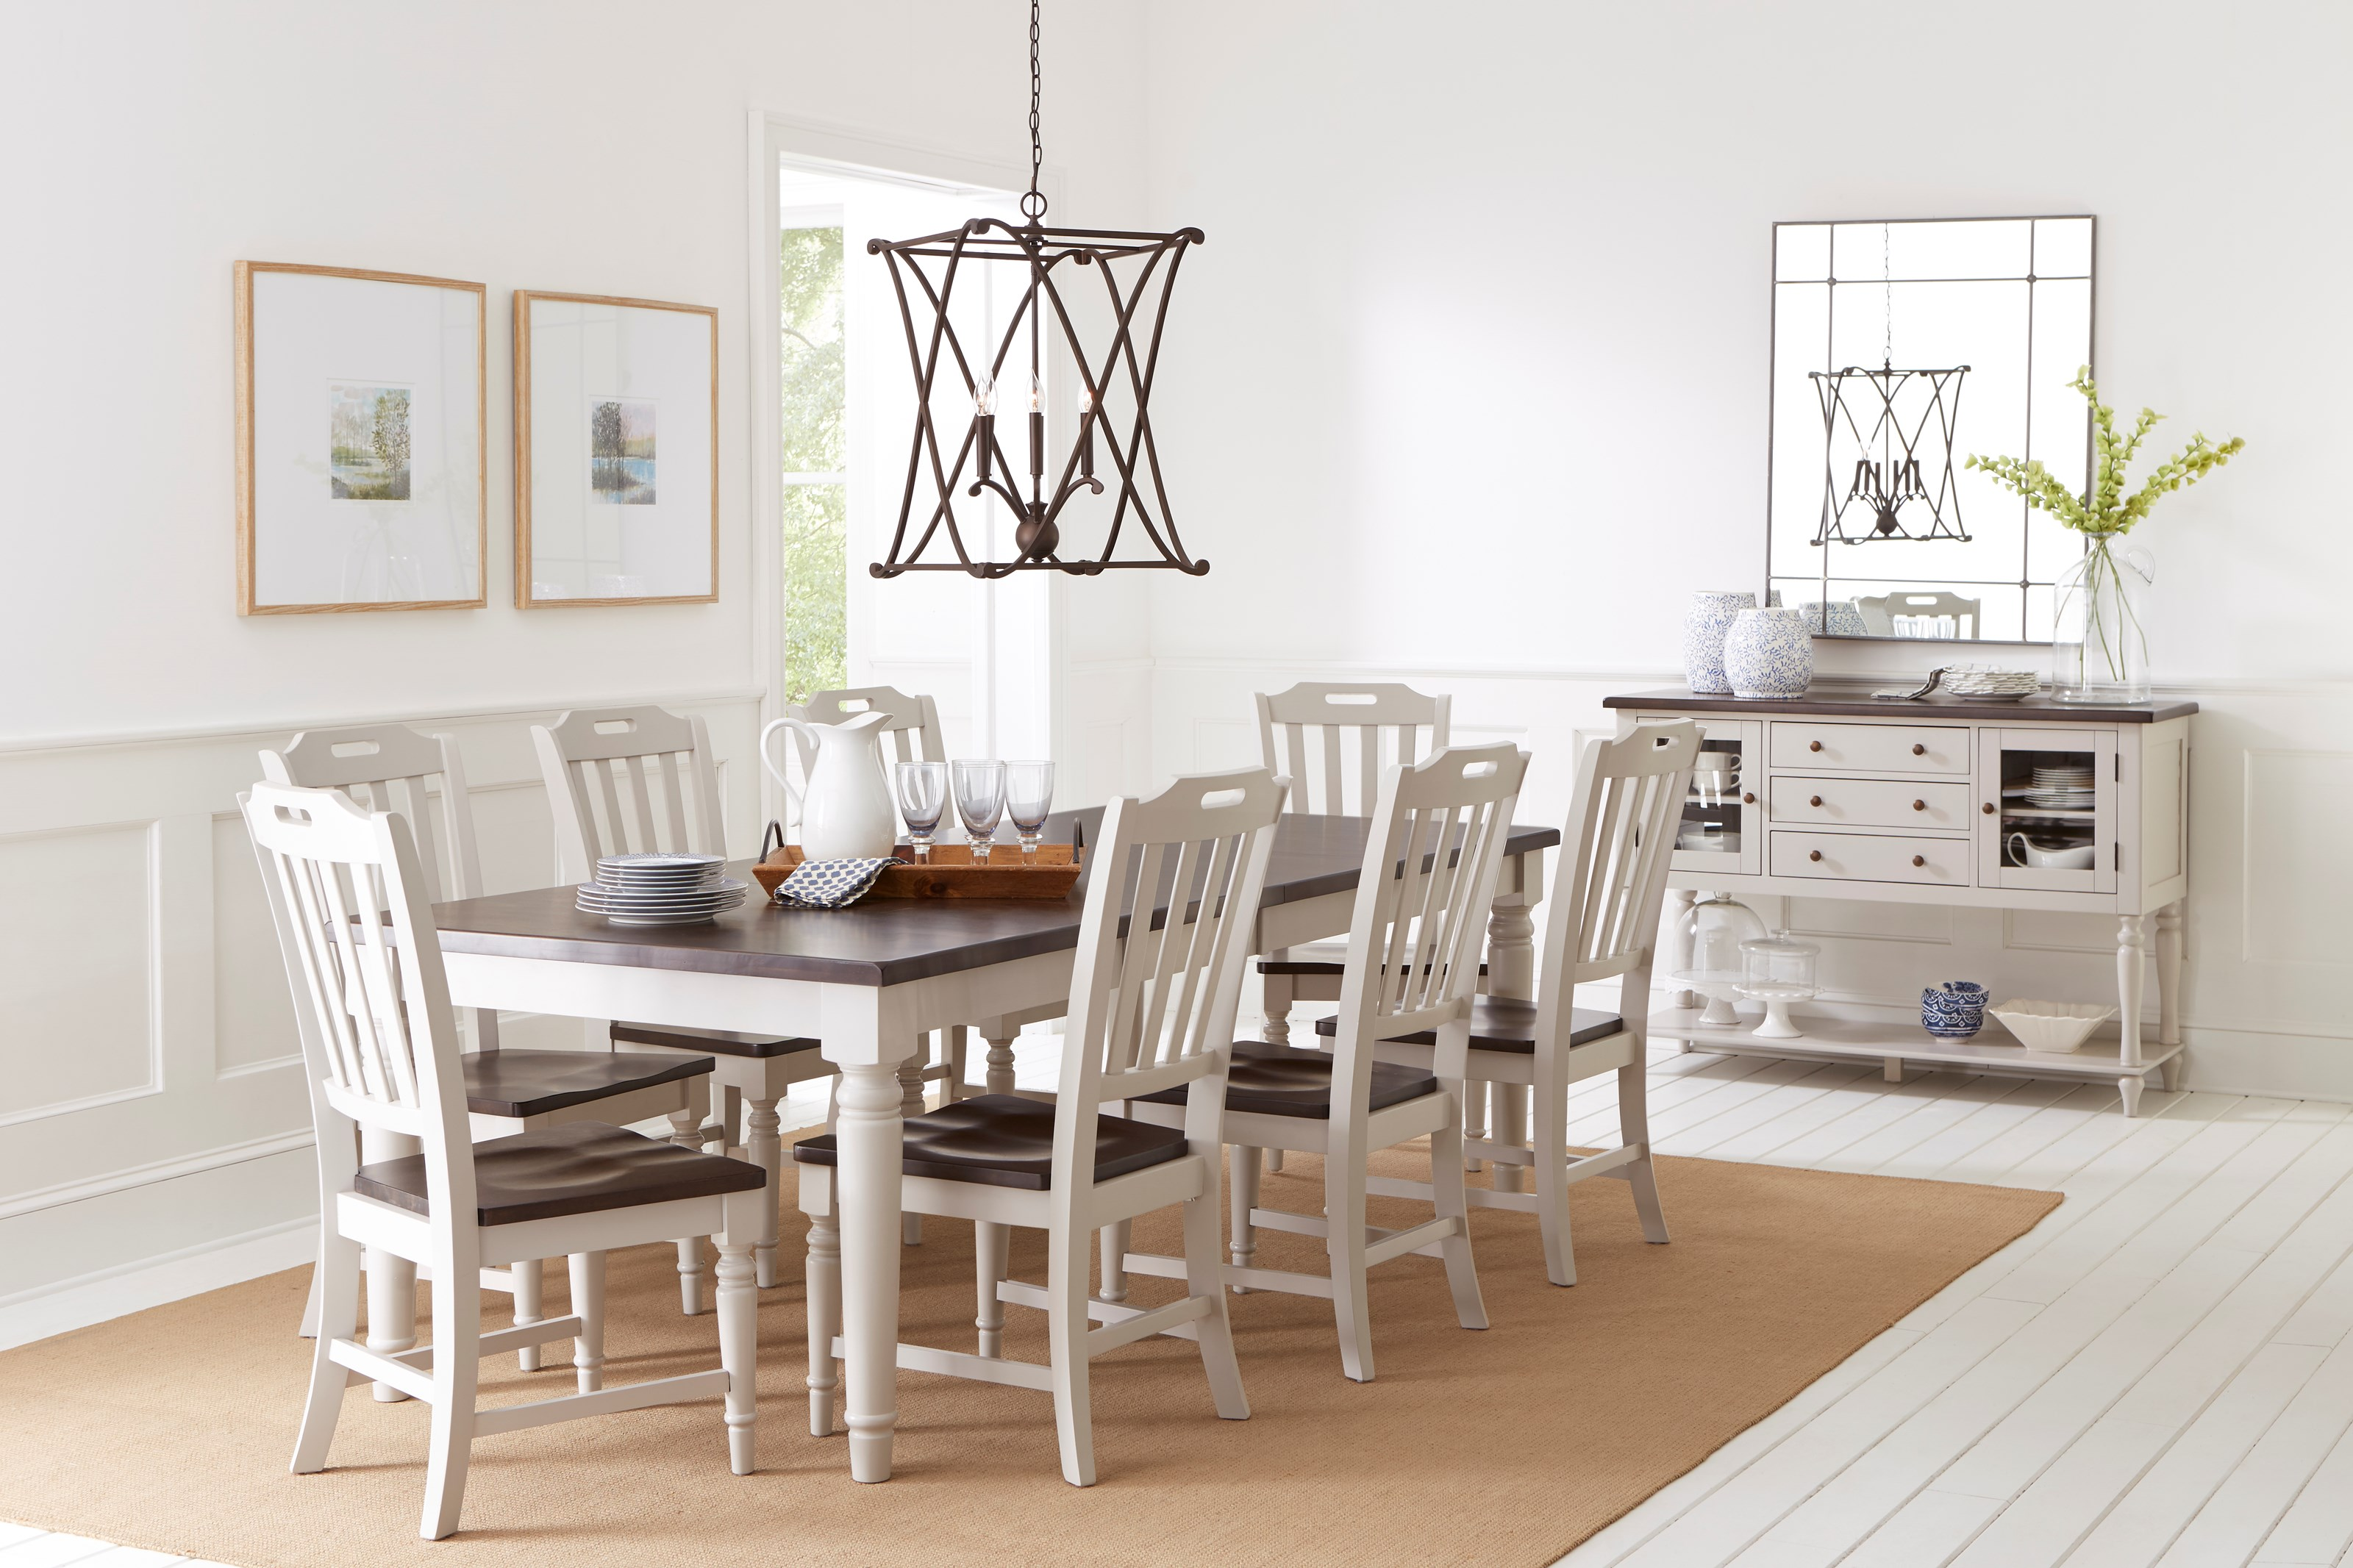 Orchard Park Dining Table with 8 Chairs by Jofran at Jofran